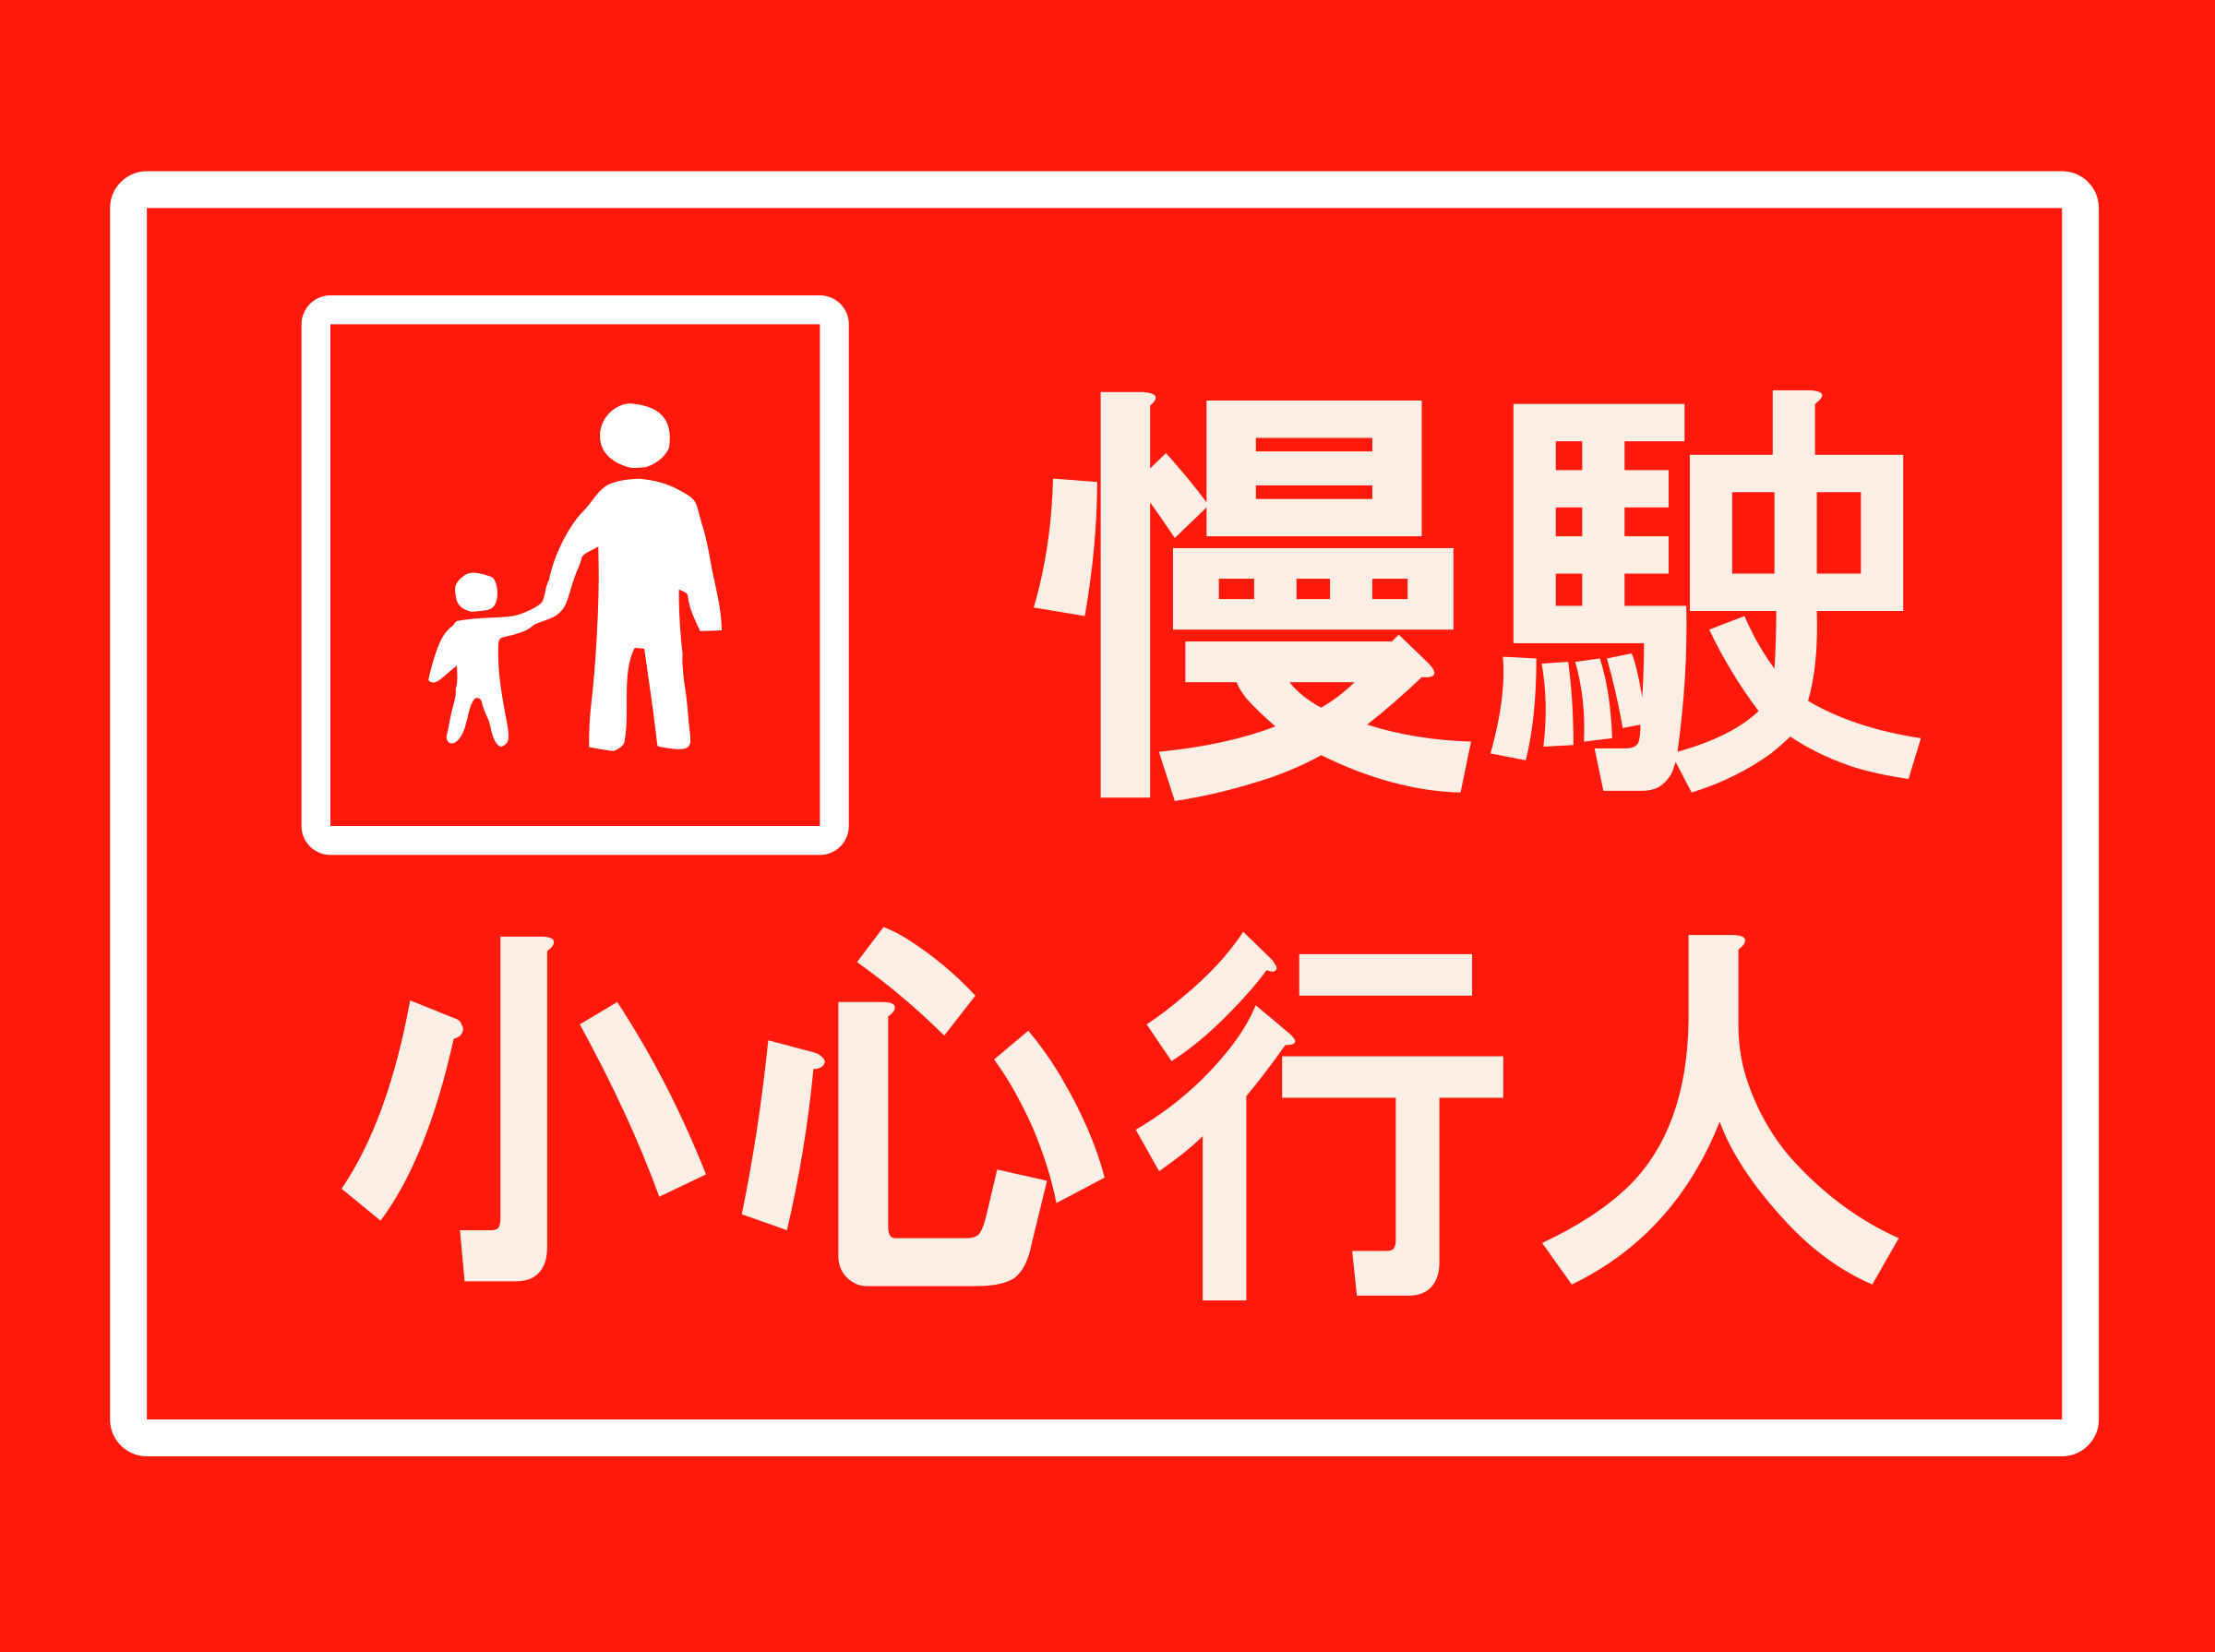 Drive Slowly Sign - Chinese by j4p4n